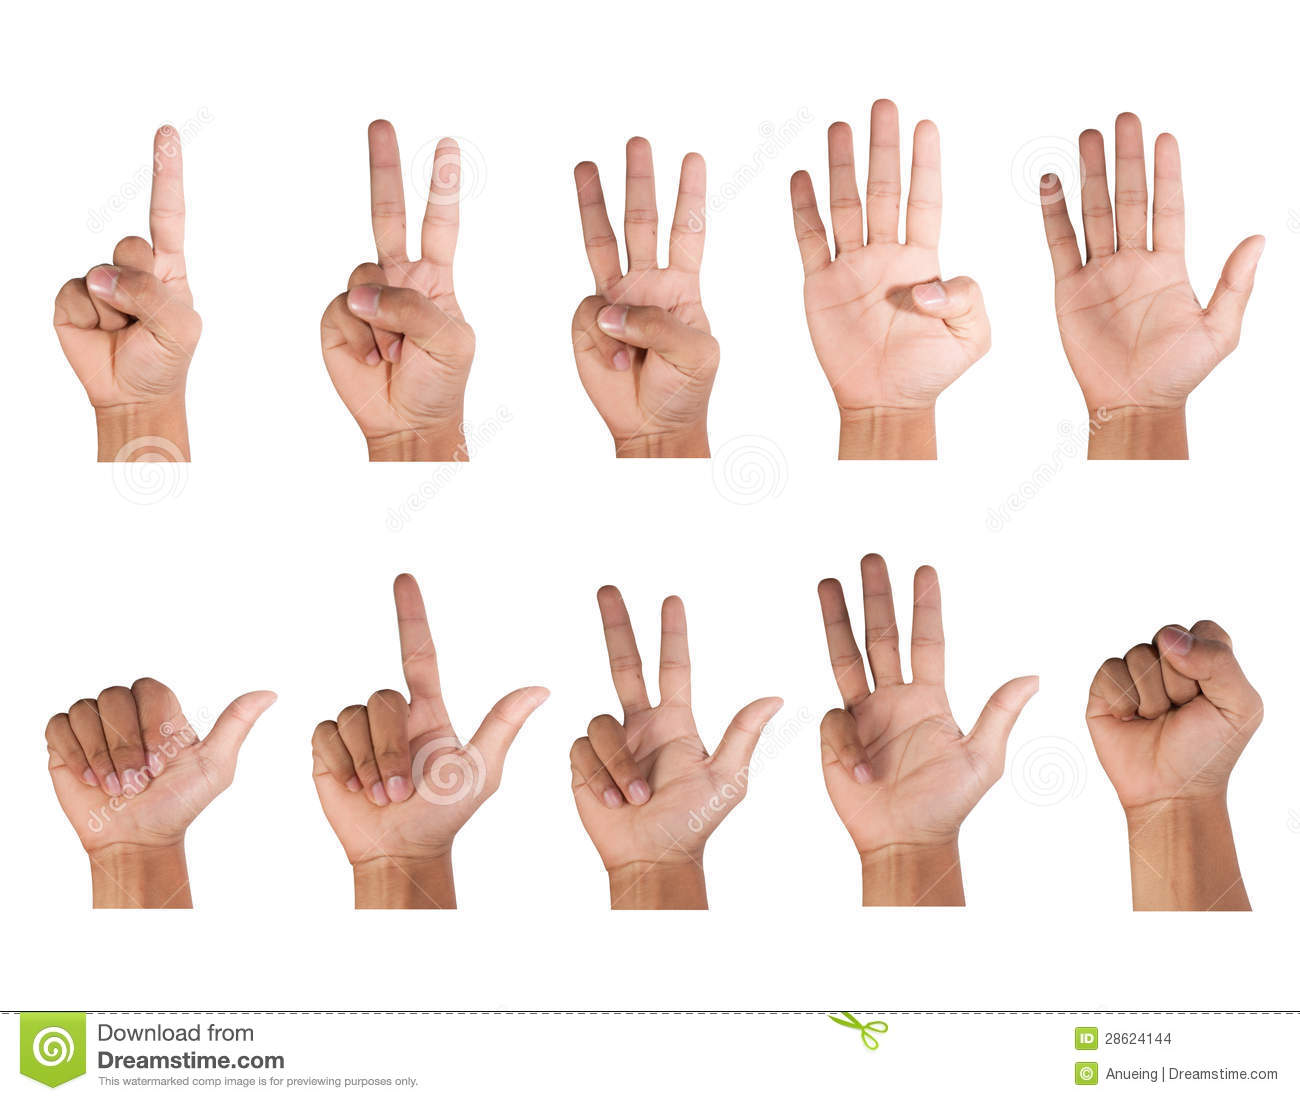 Fingers count, ten styles white background, isolated.